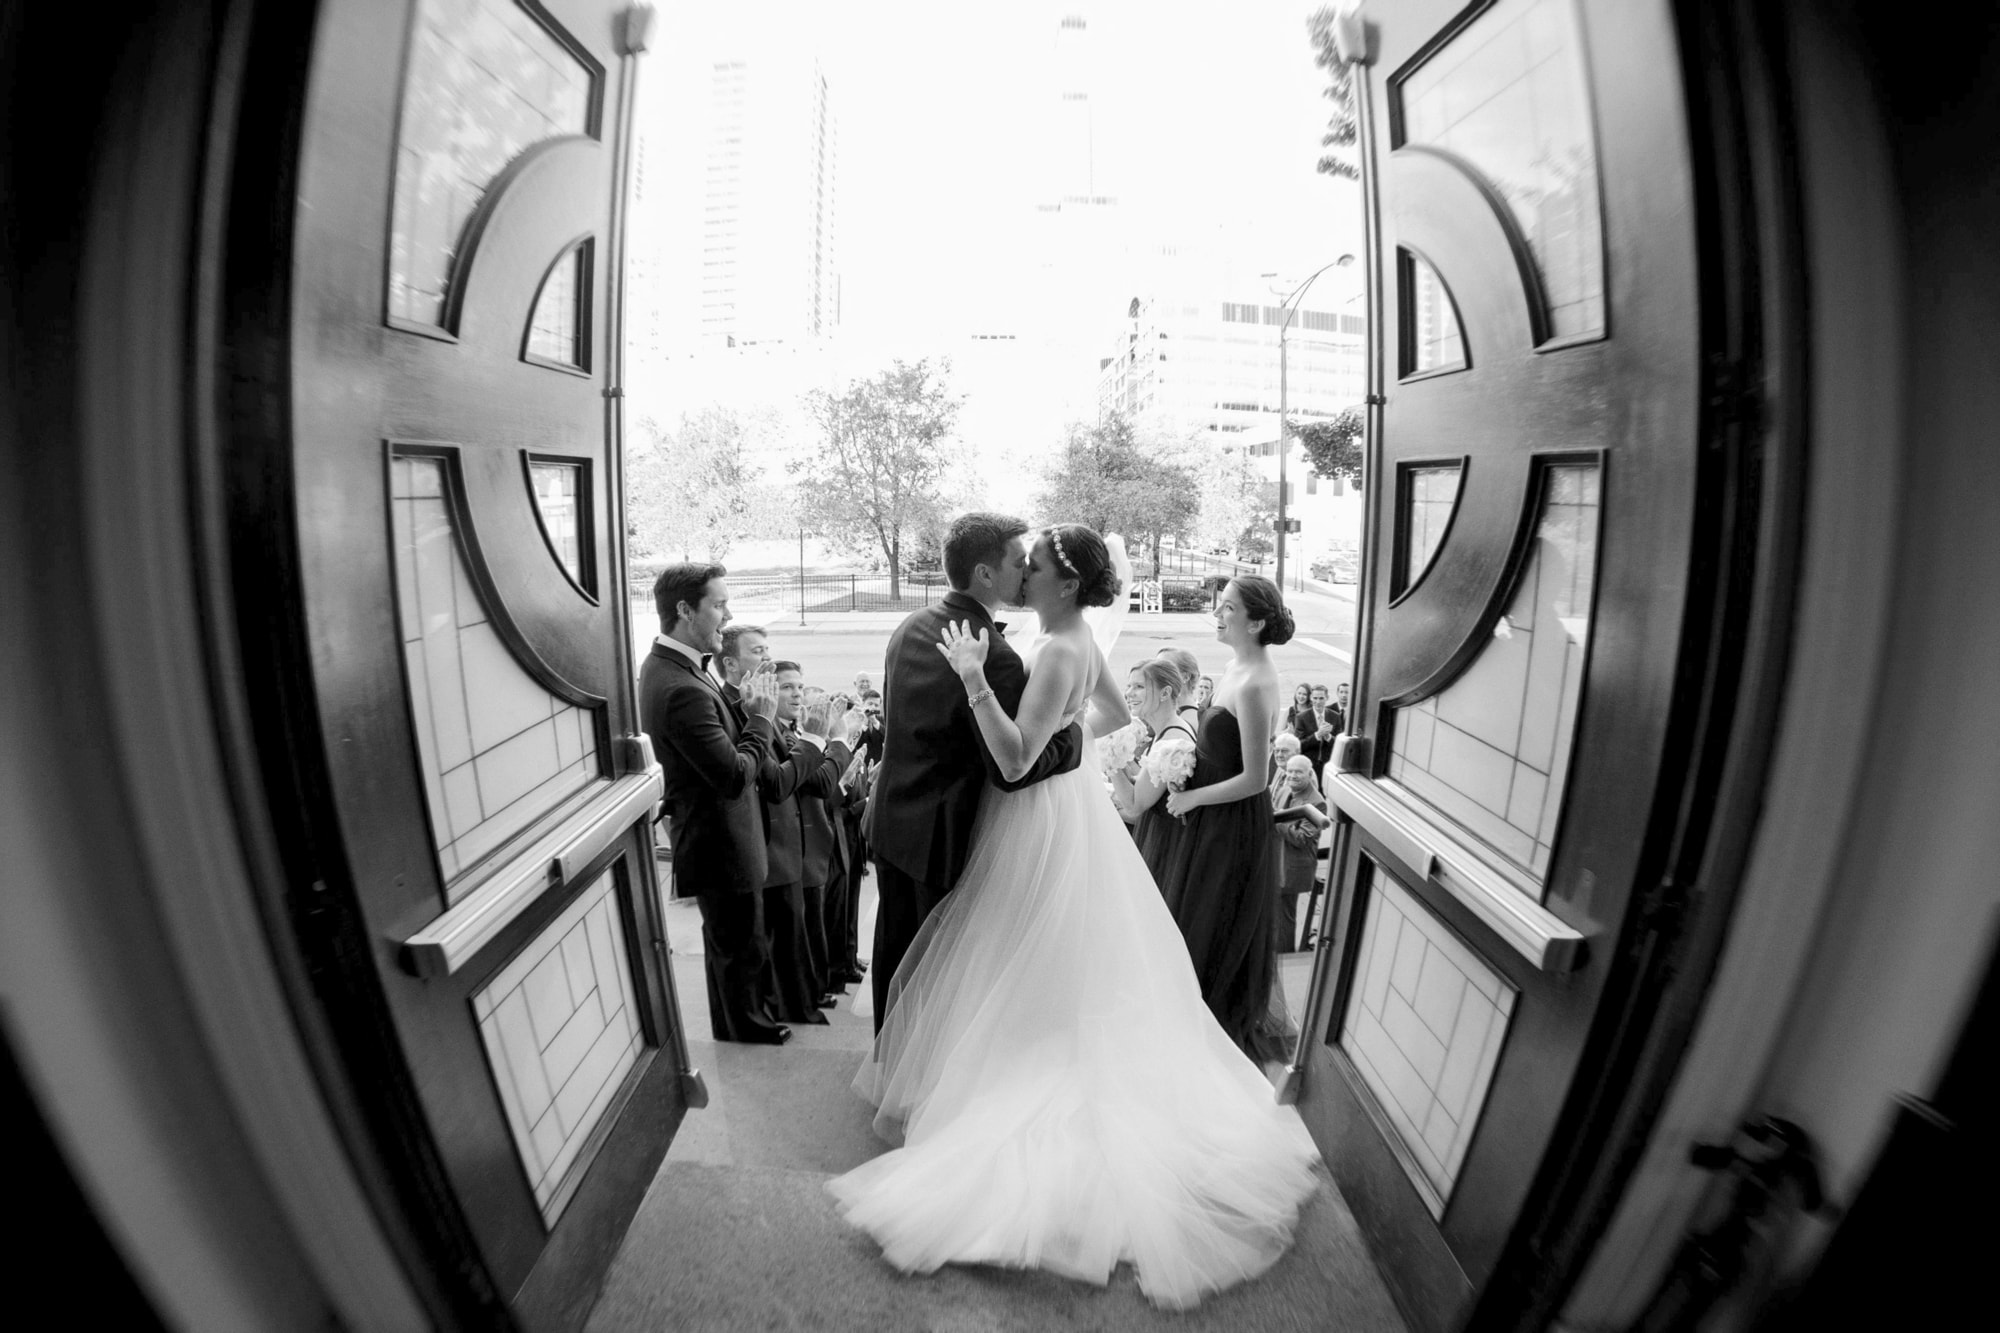 Romantic exit from wedding ceremony at Old St. Patrick's church